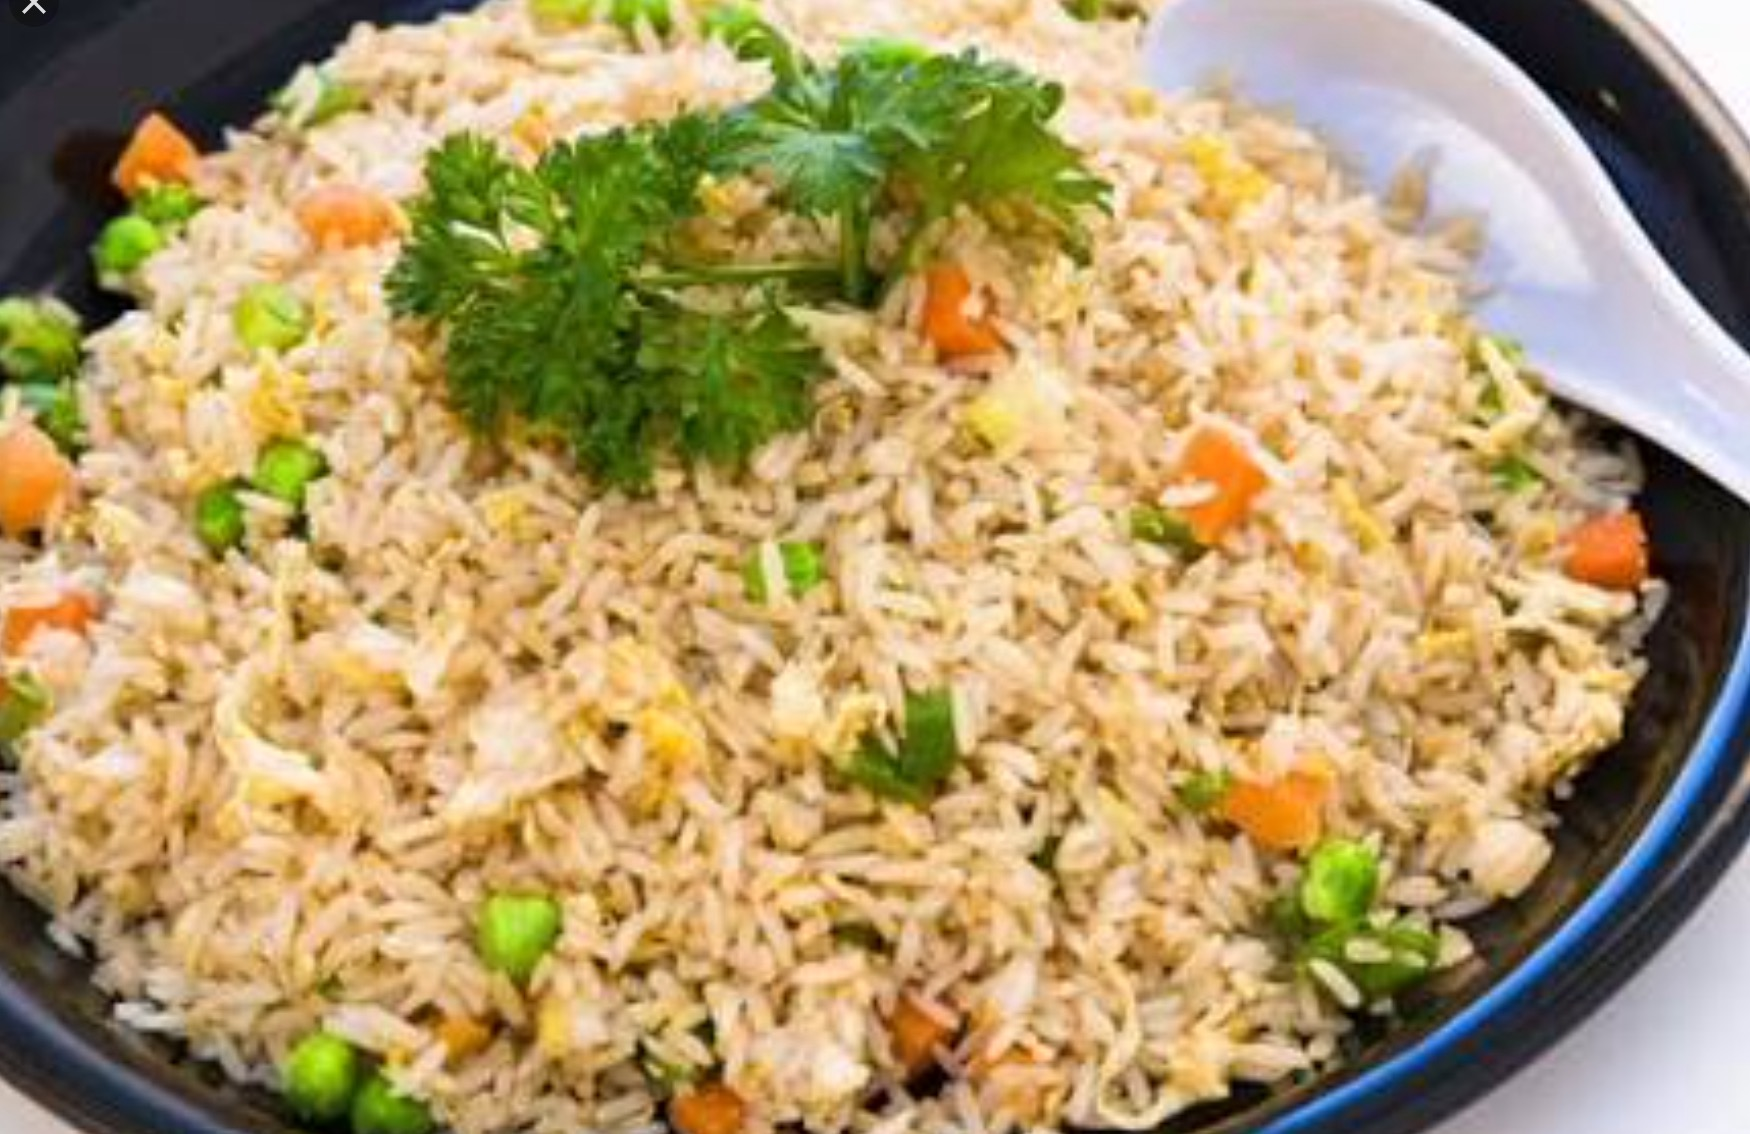 Fried rice w. Vegetables